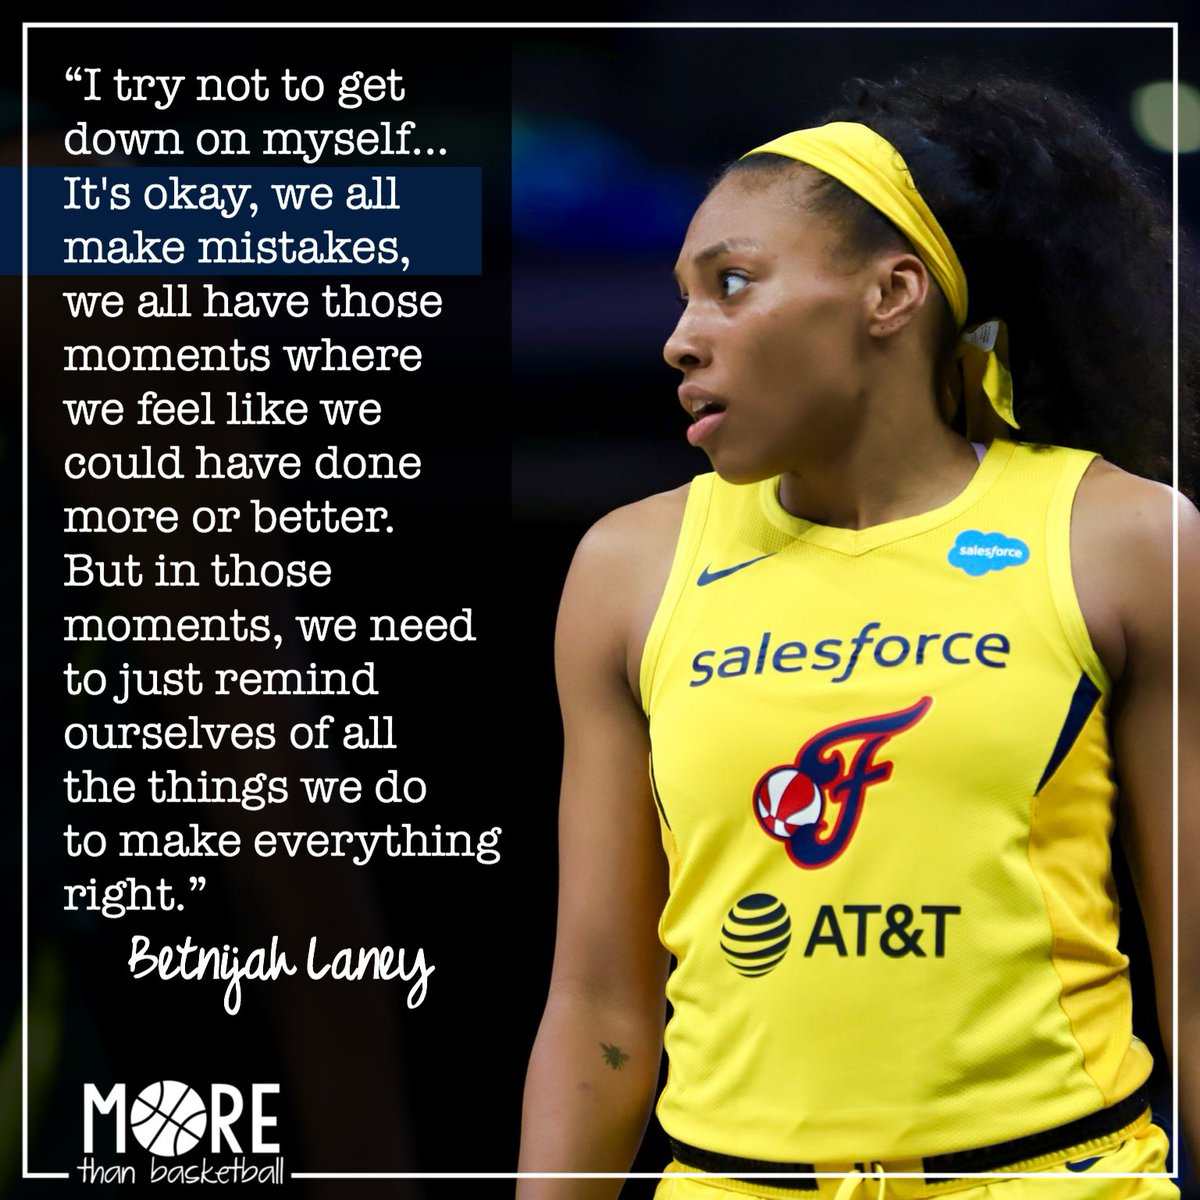 Game Day! Wise words on overcoming disappointment by defensive dynamo @BetnijahLaney. The @indianafever take on the @dallaswings at 8 Eastern. Watch on CBS Sports Network. . #wnba #indianafever #fever20